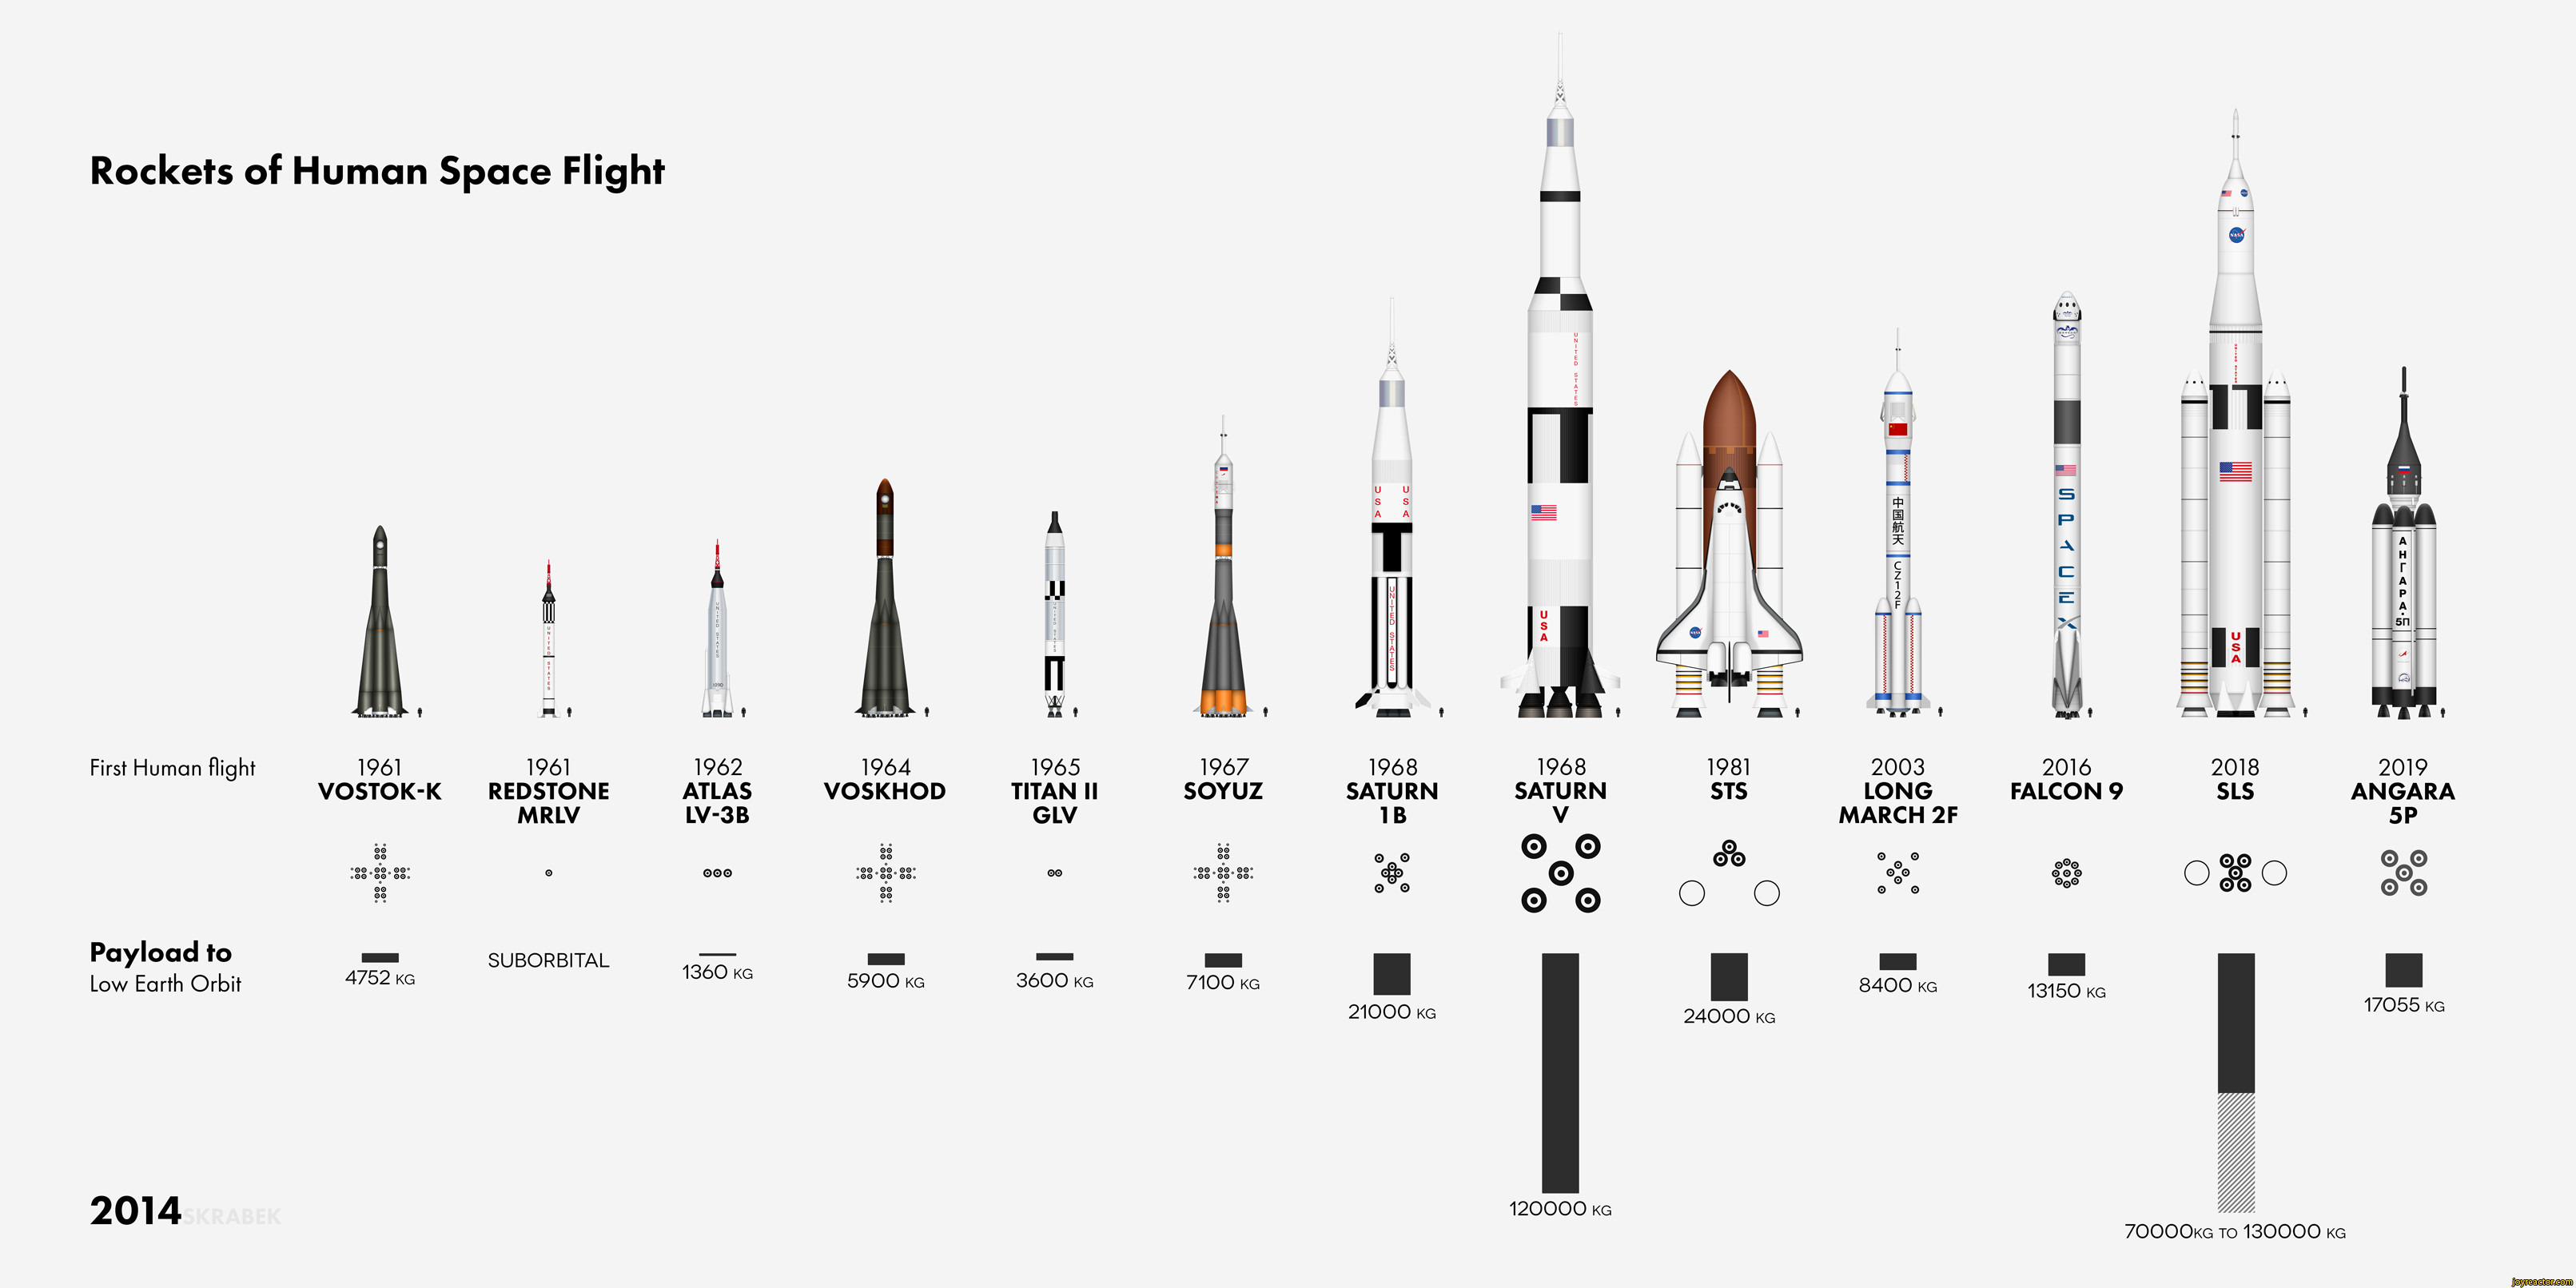 Rockets Of Human Space Flightfirst Human Flightpayload